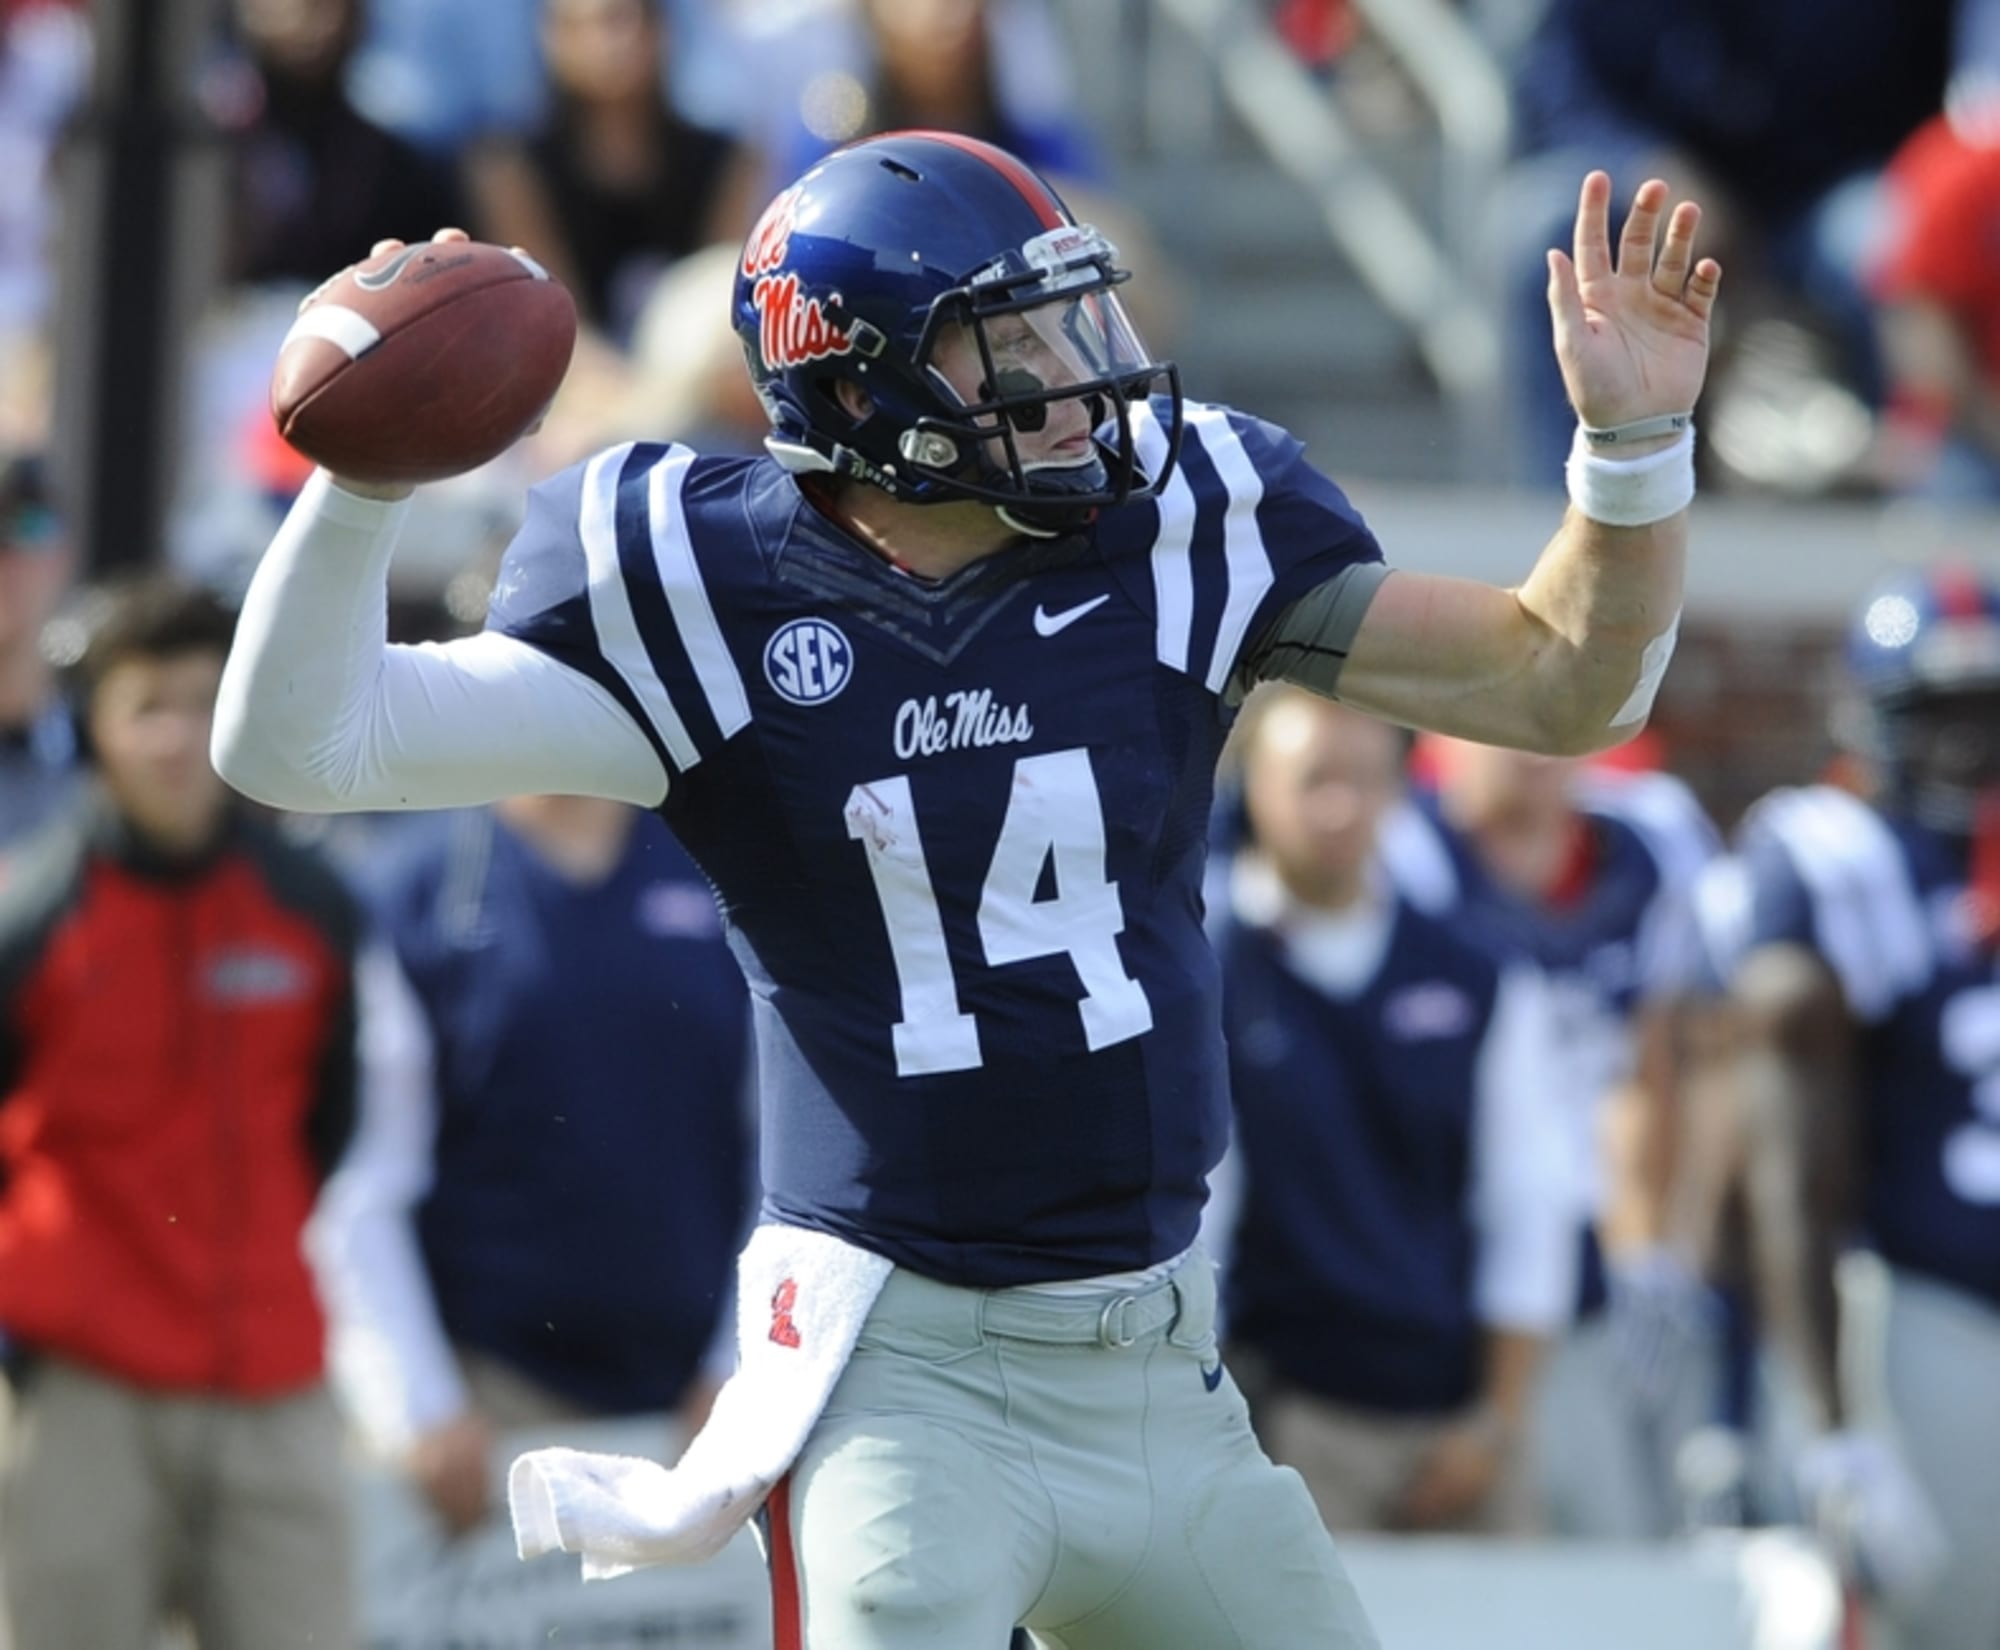 Ranking The Ole Miss Football Uniforms